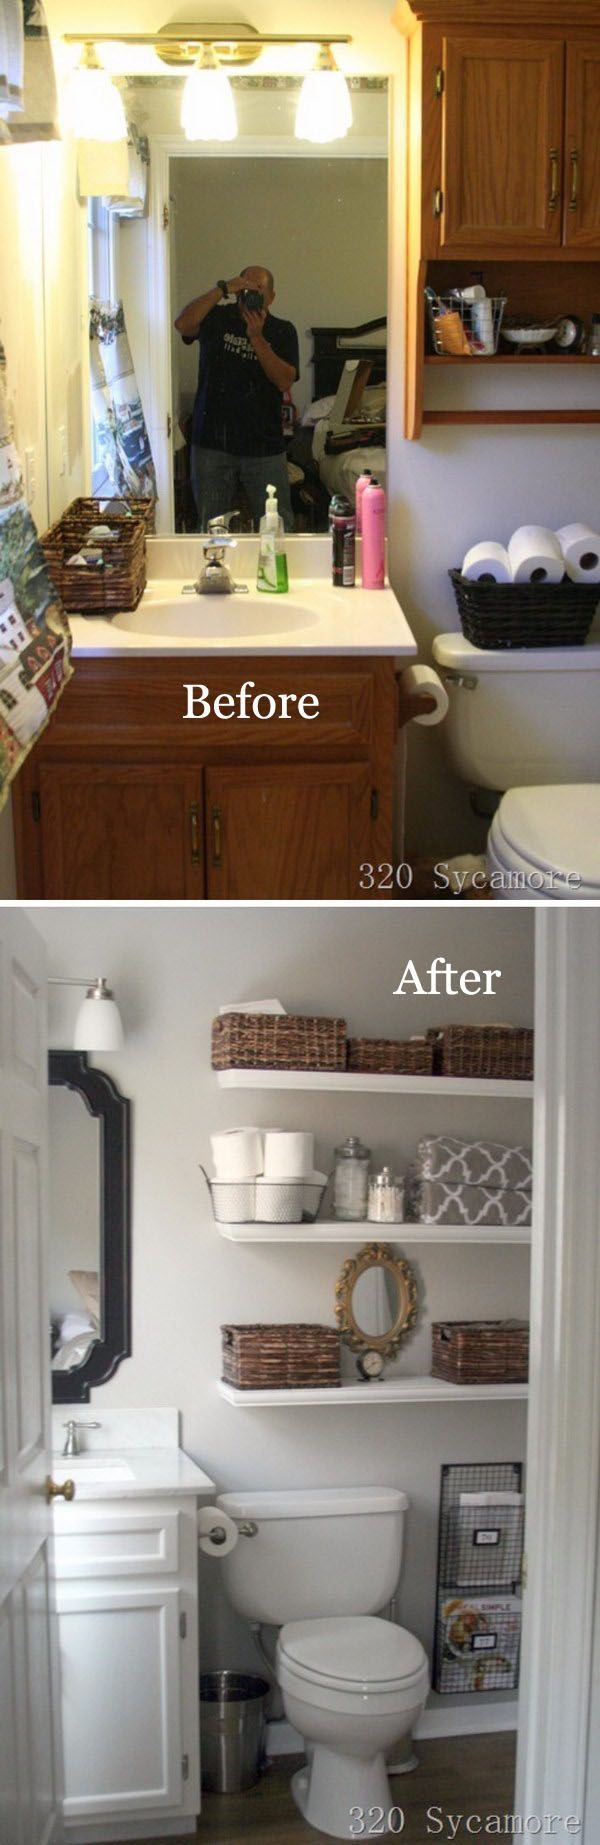 Before and After  20 Awesome Bathroom Makeovers Best 25 Small bathroom redo ideas on Pinterest